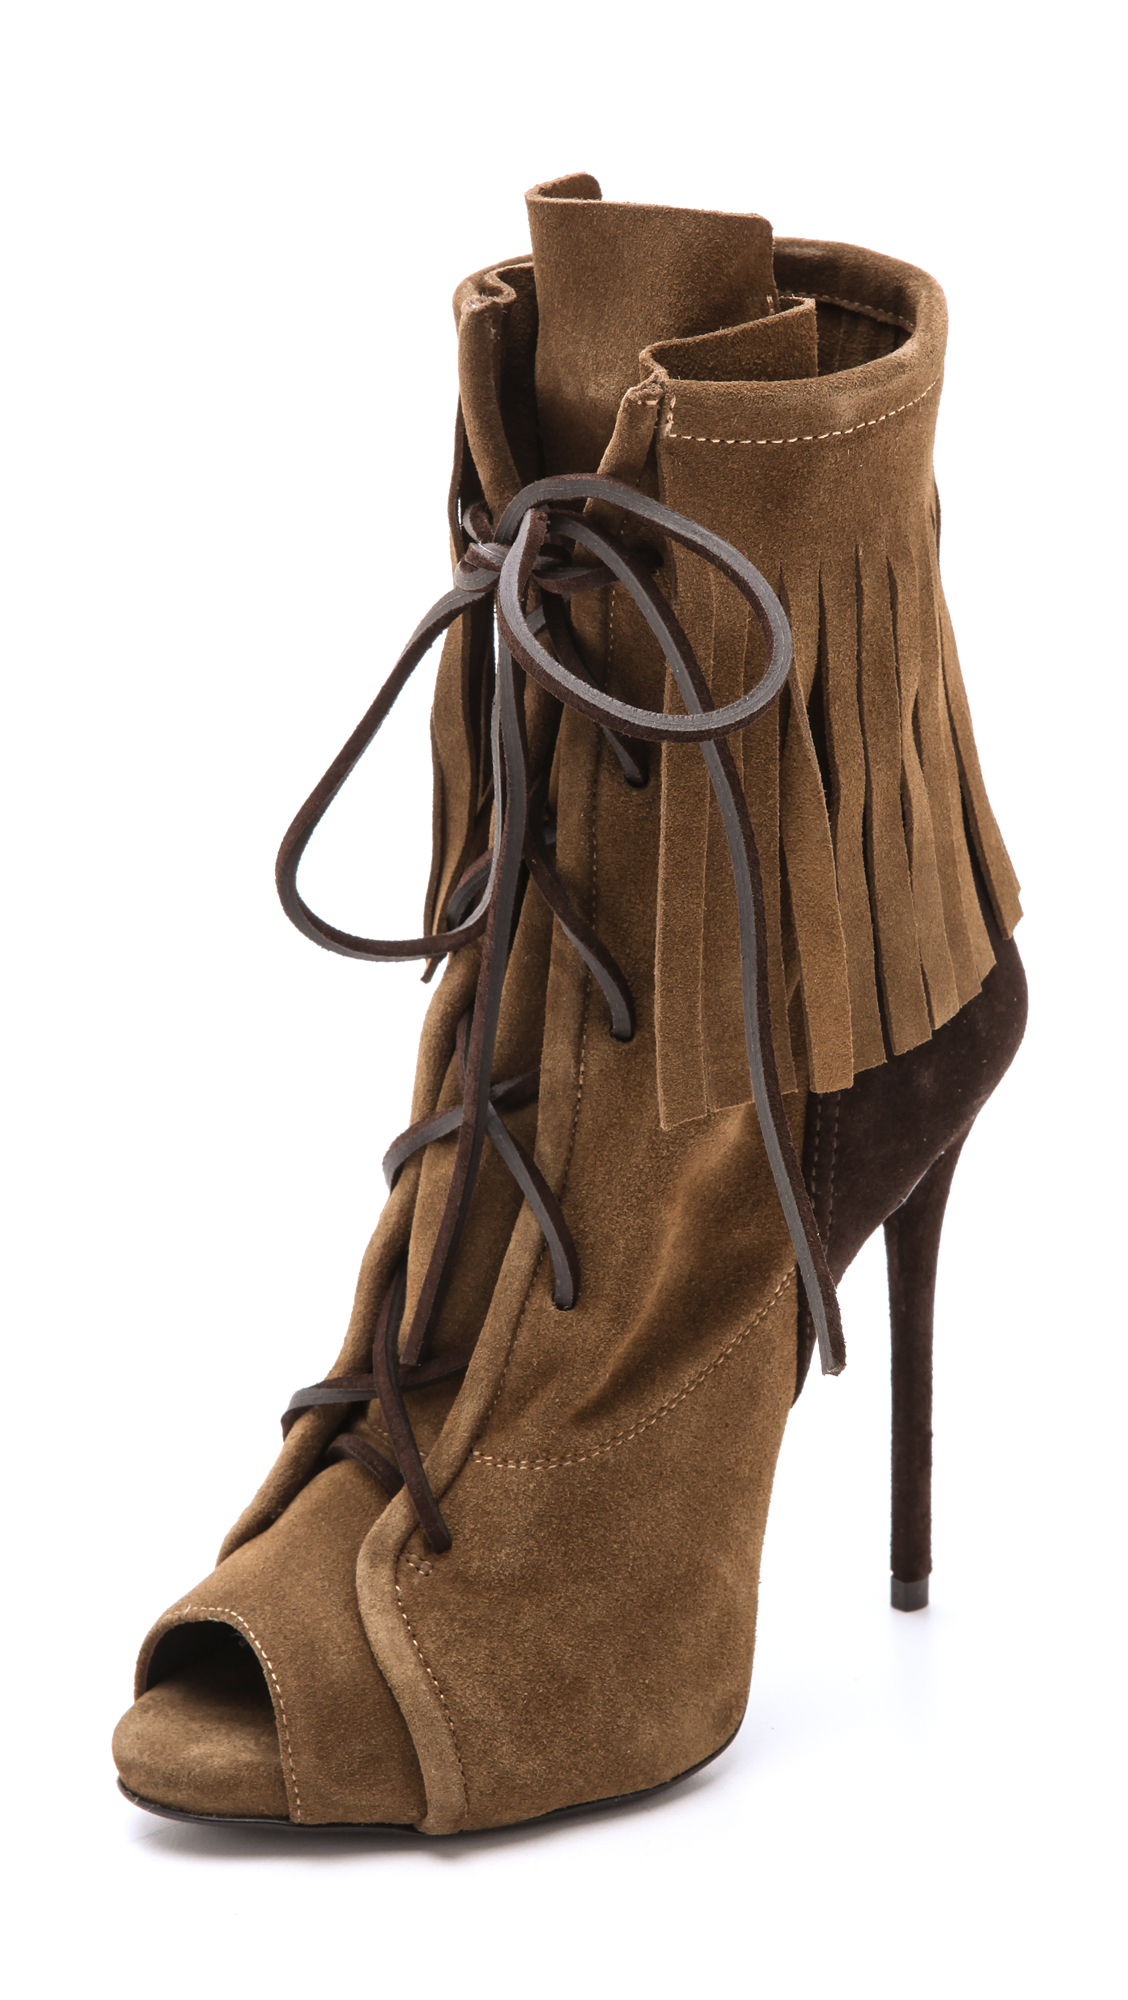 GIUSEPPE ZANOTTI Fringed Suede Ankle Boots at Shopbop